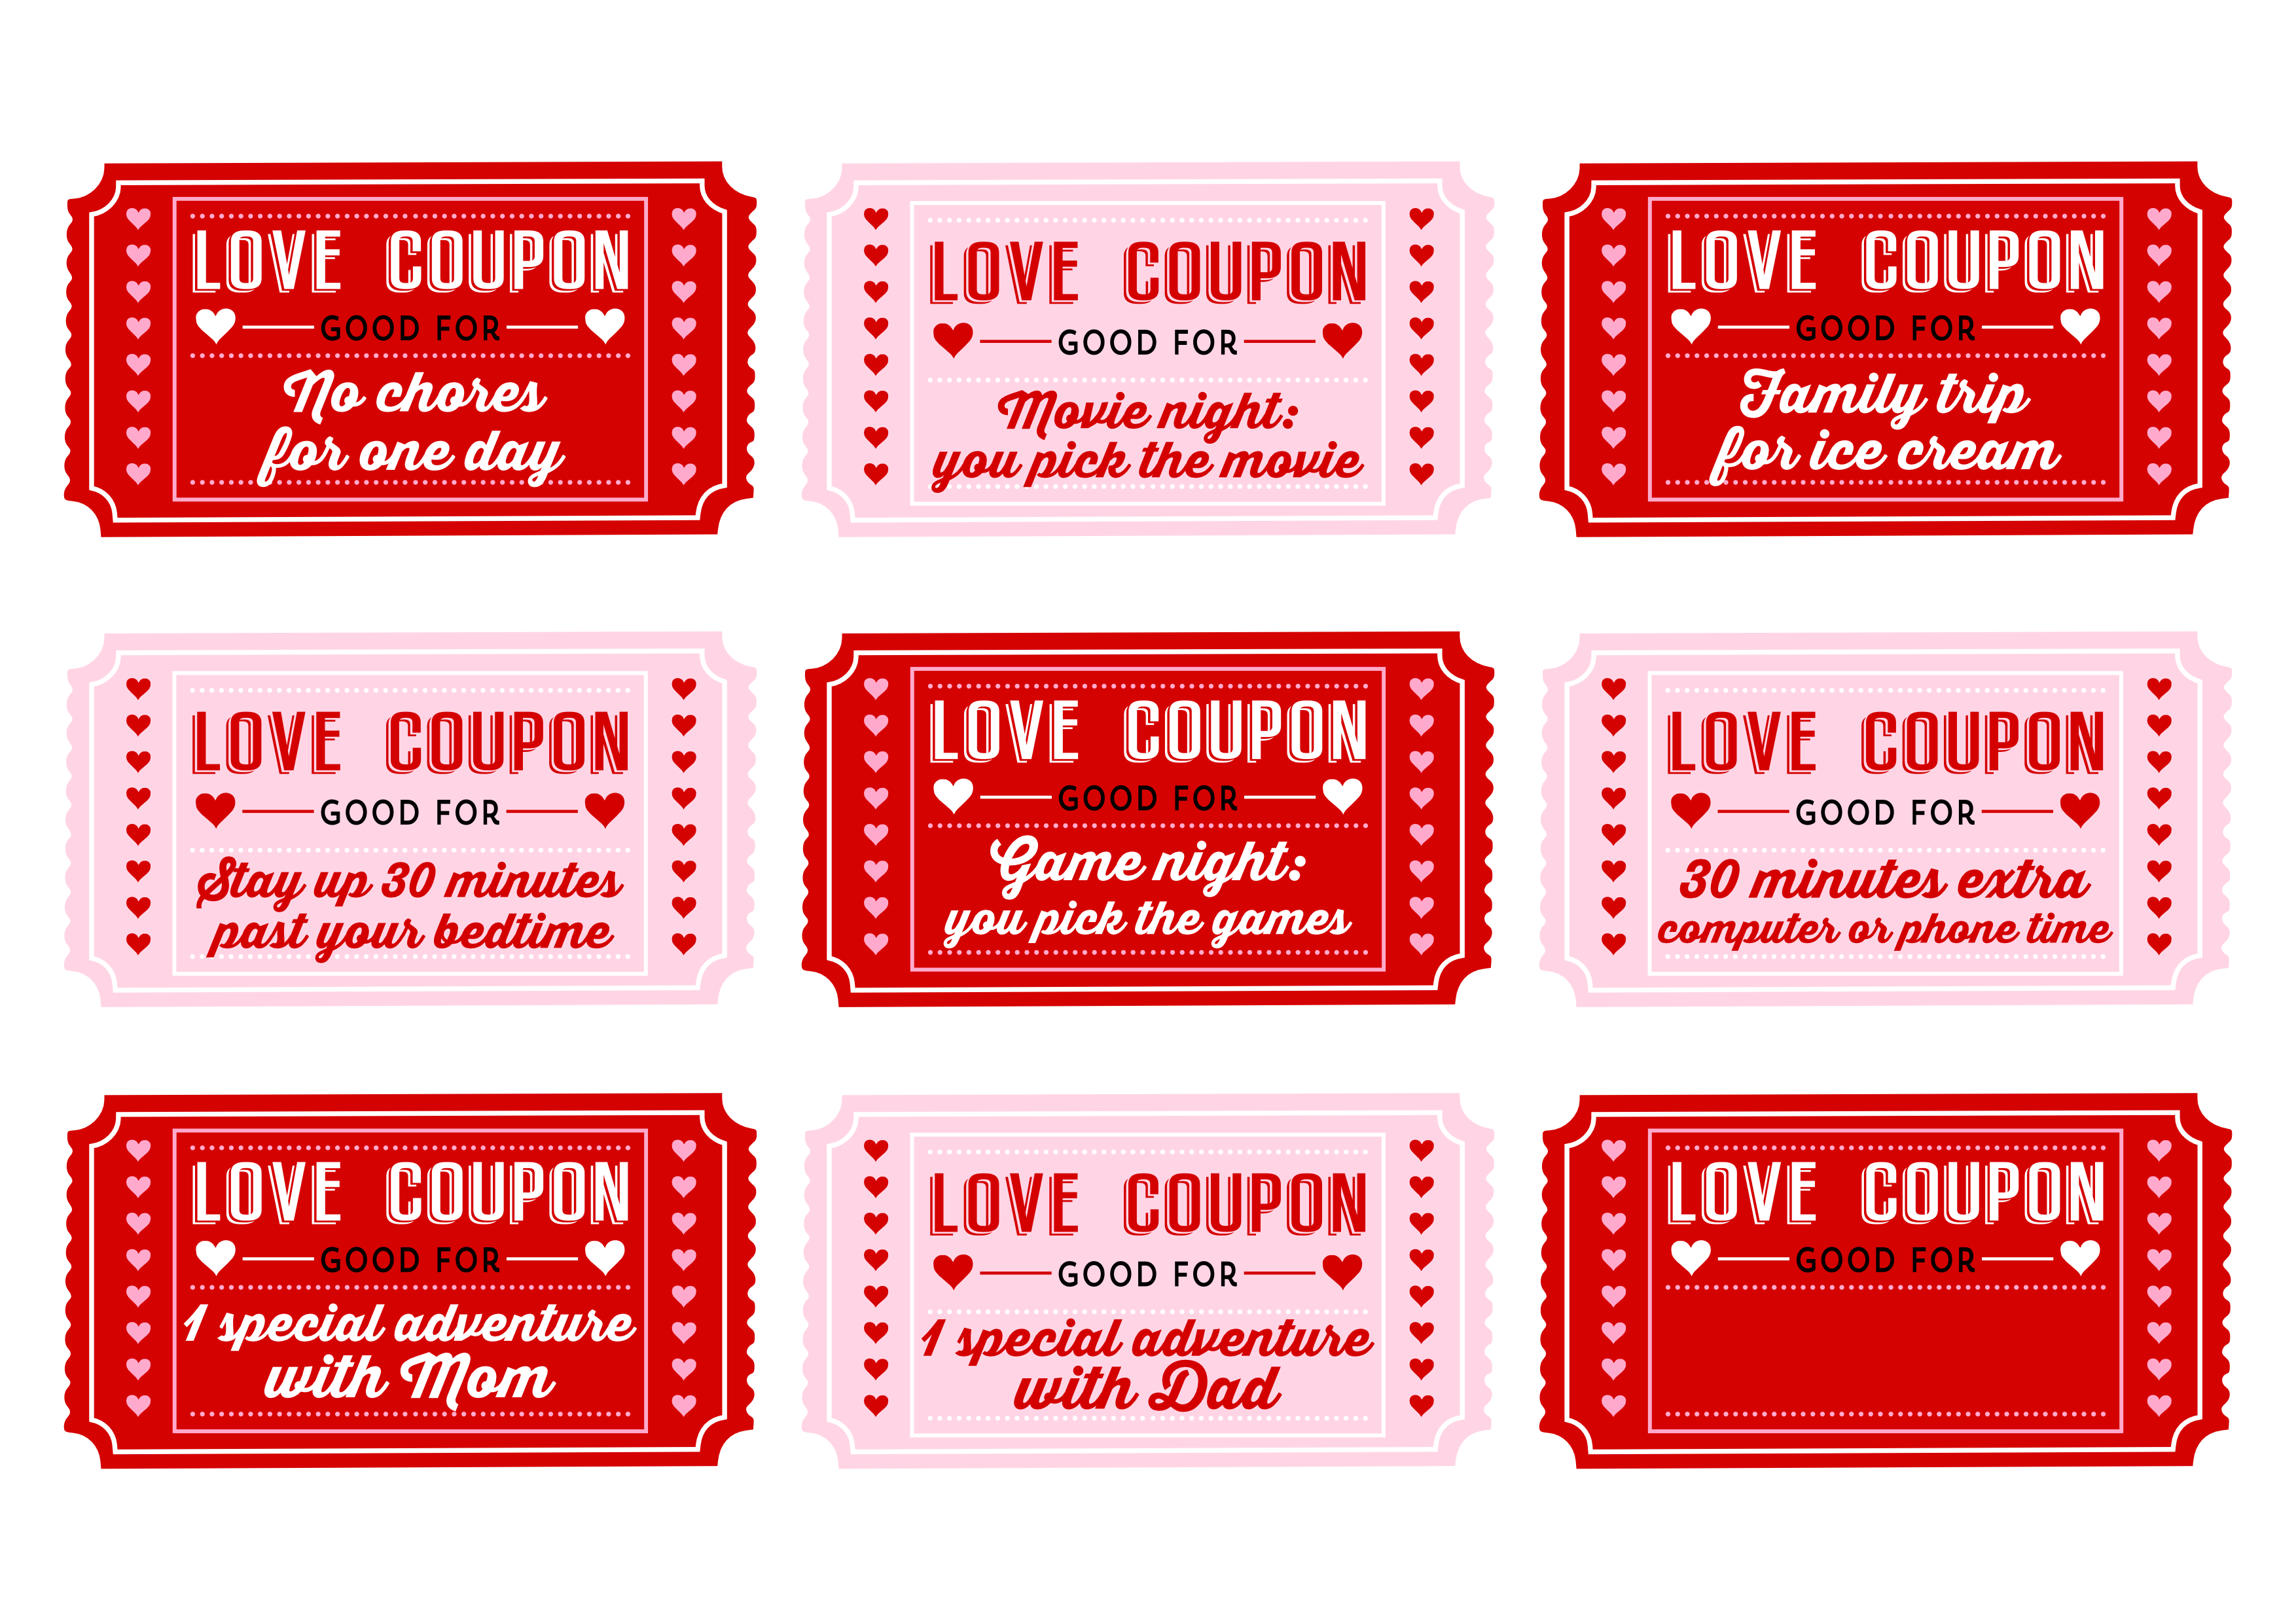 Coupon red png. Love coupons for kids